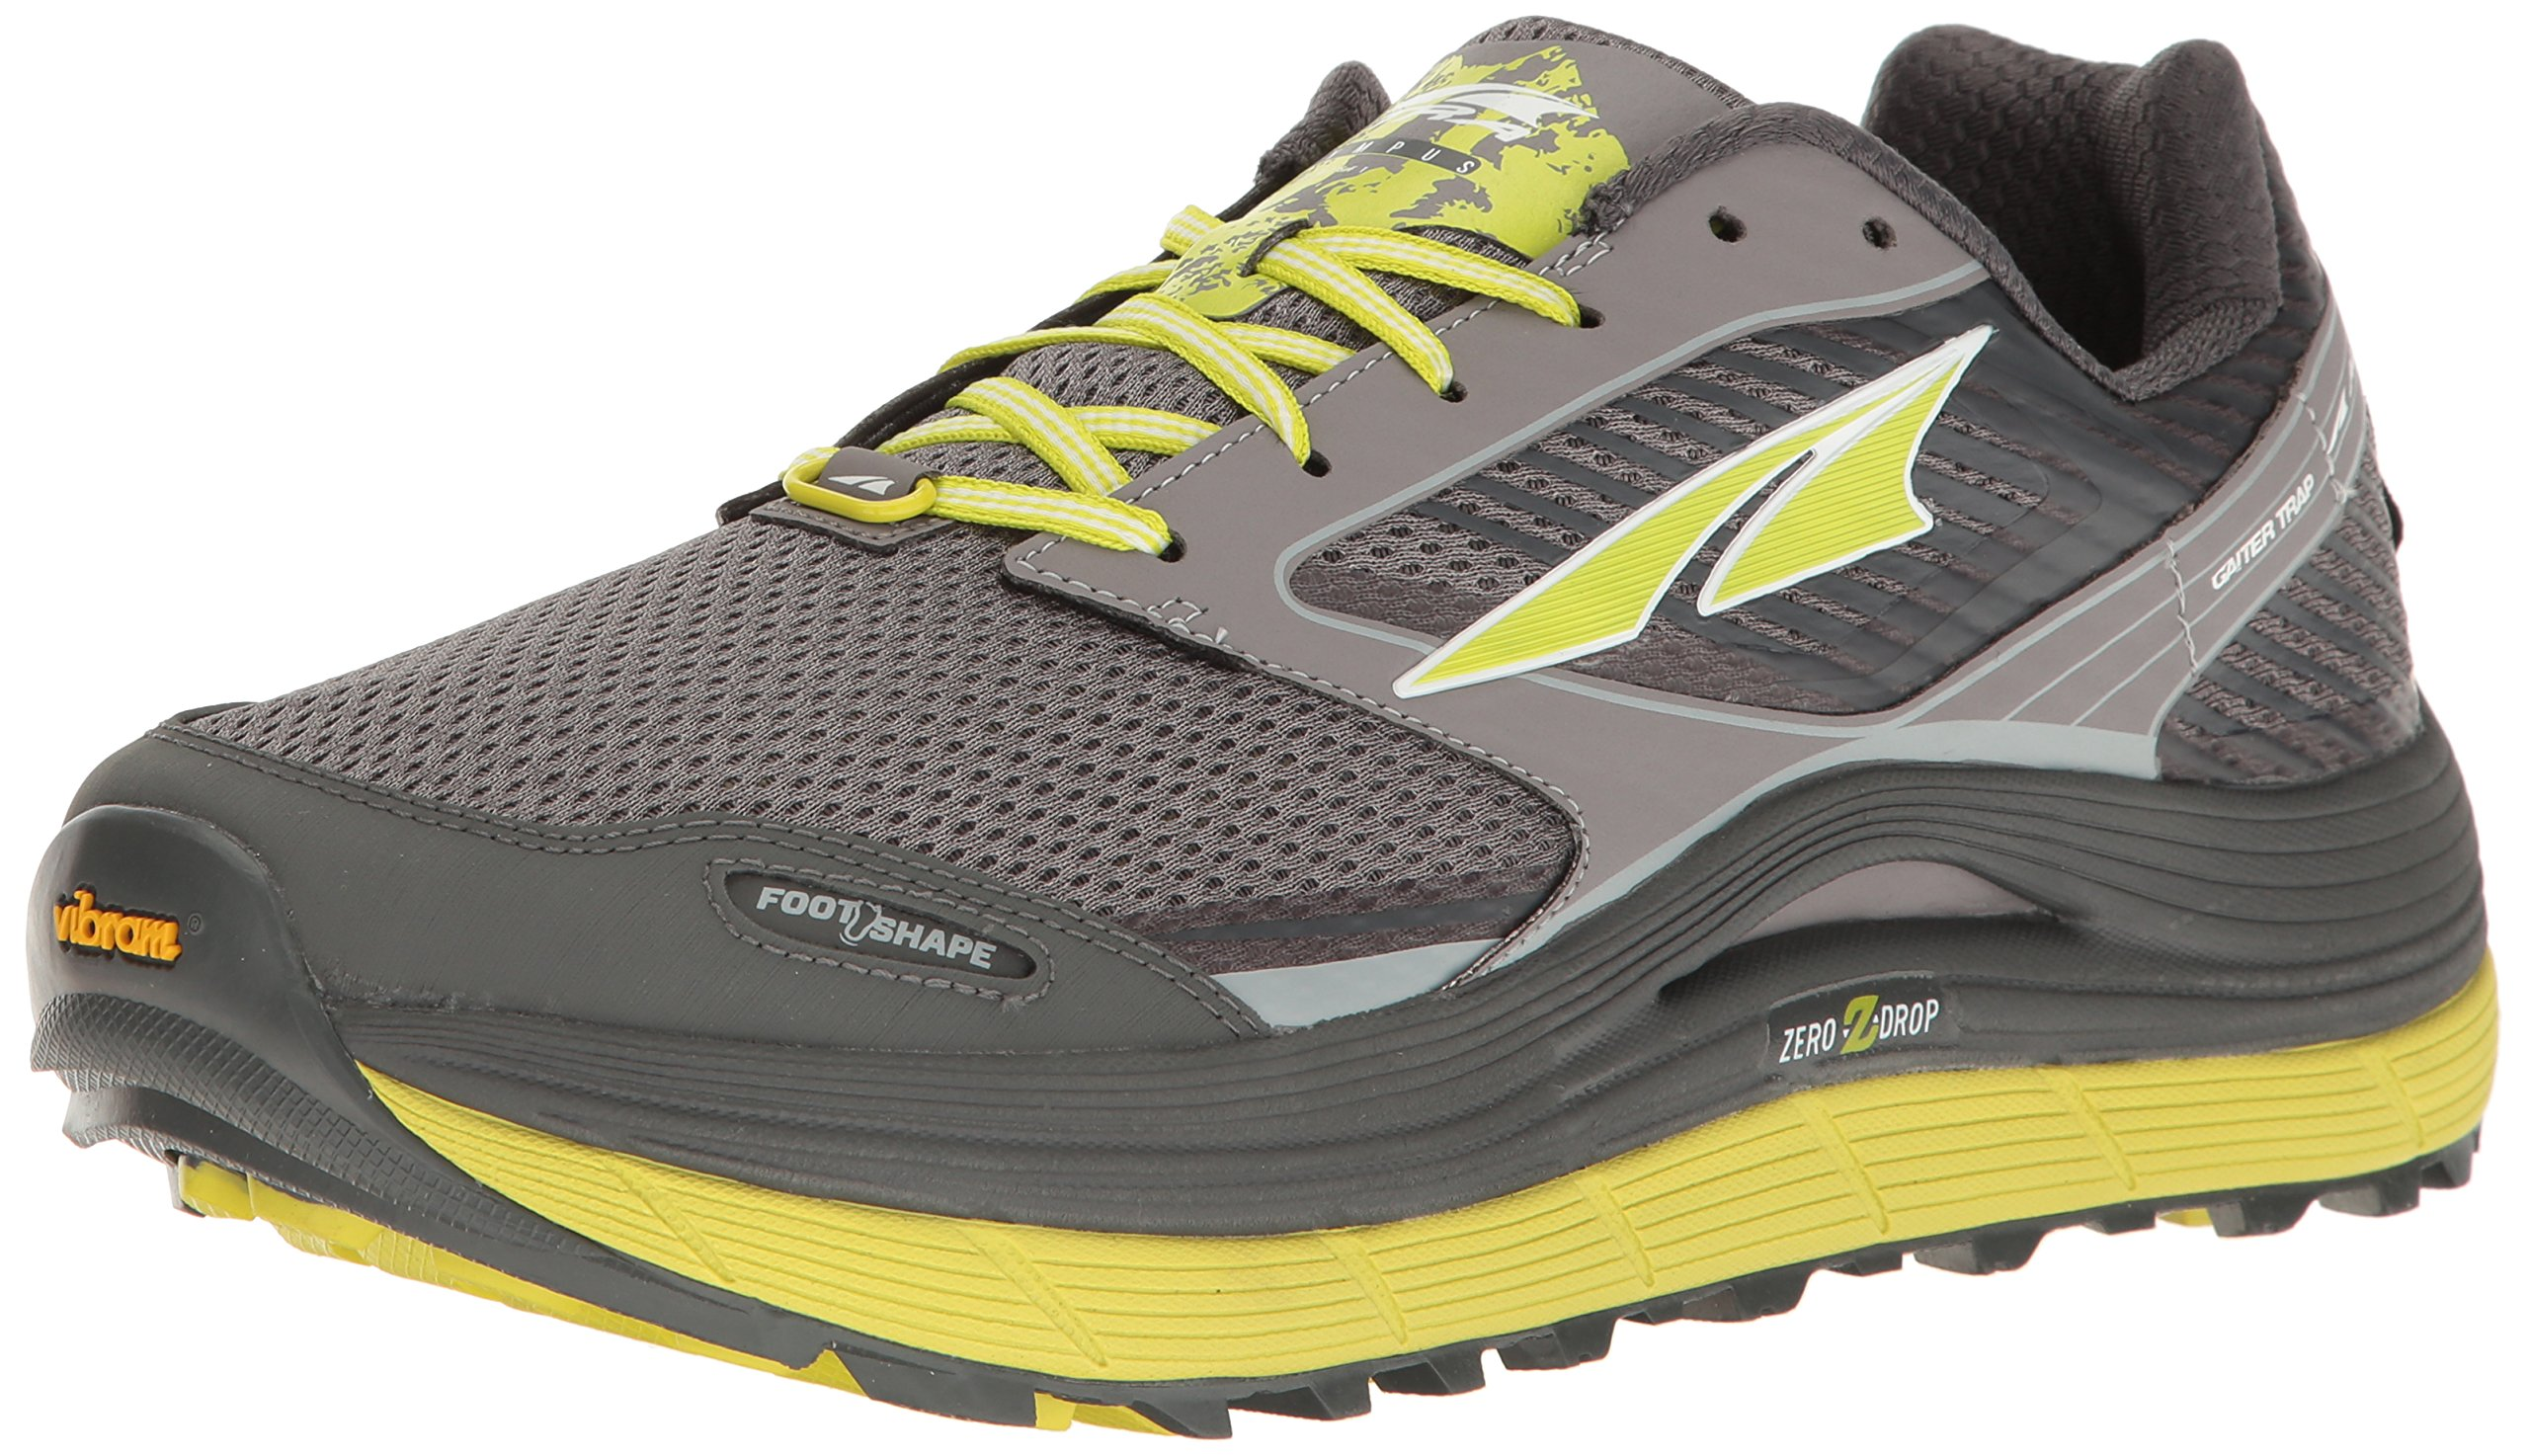 Altra Men's Olympus 2.5 Running-Shoe, Gray/Lime, 12 D US